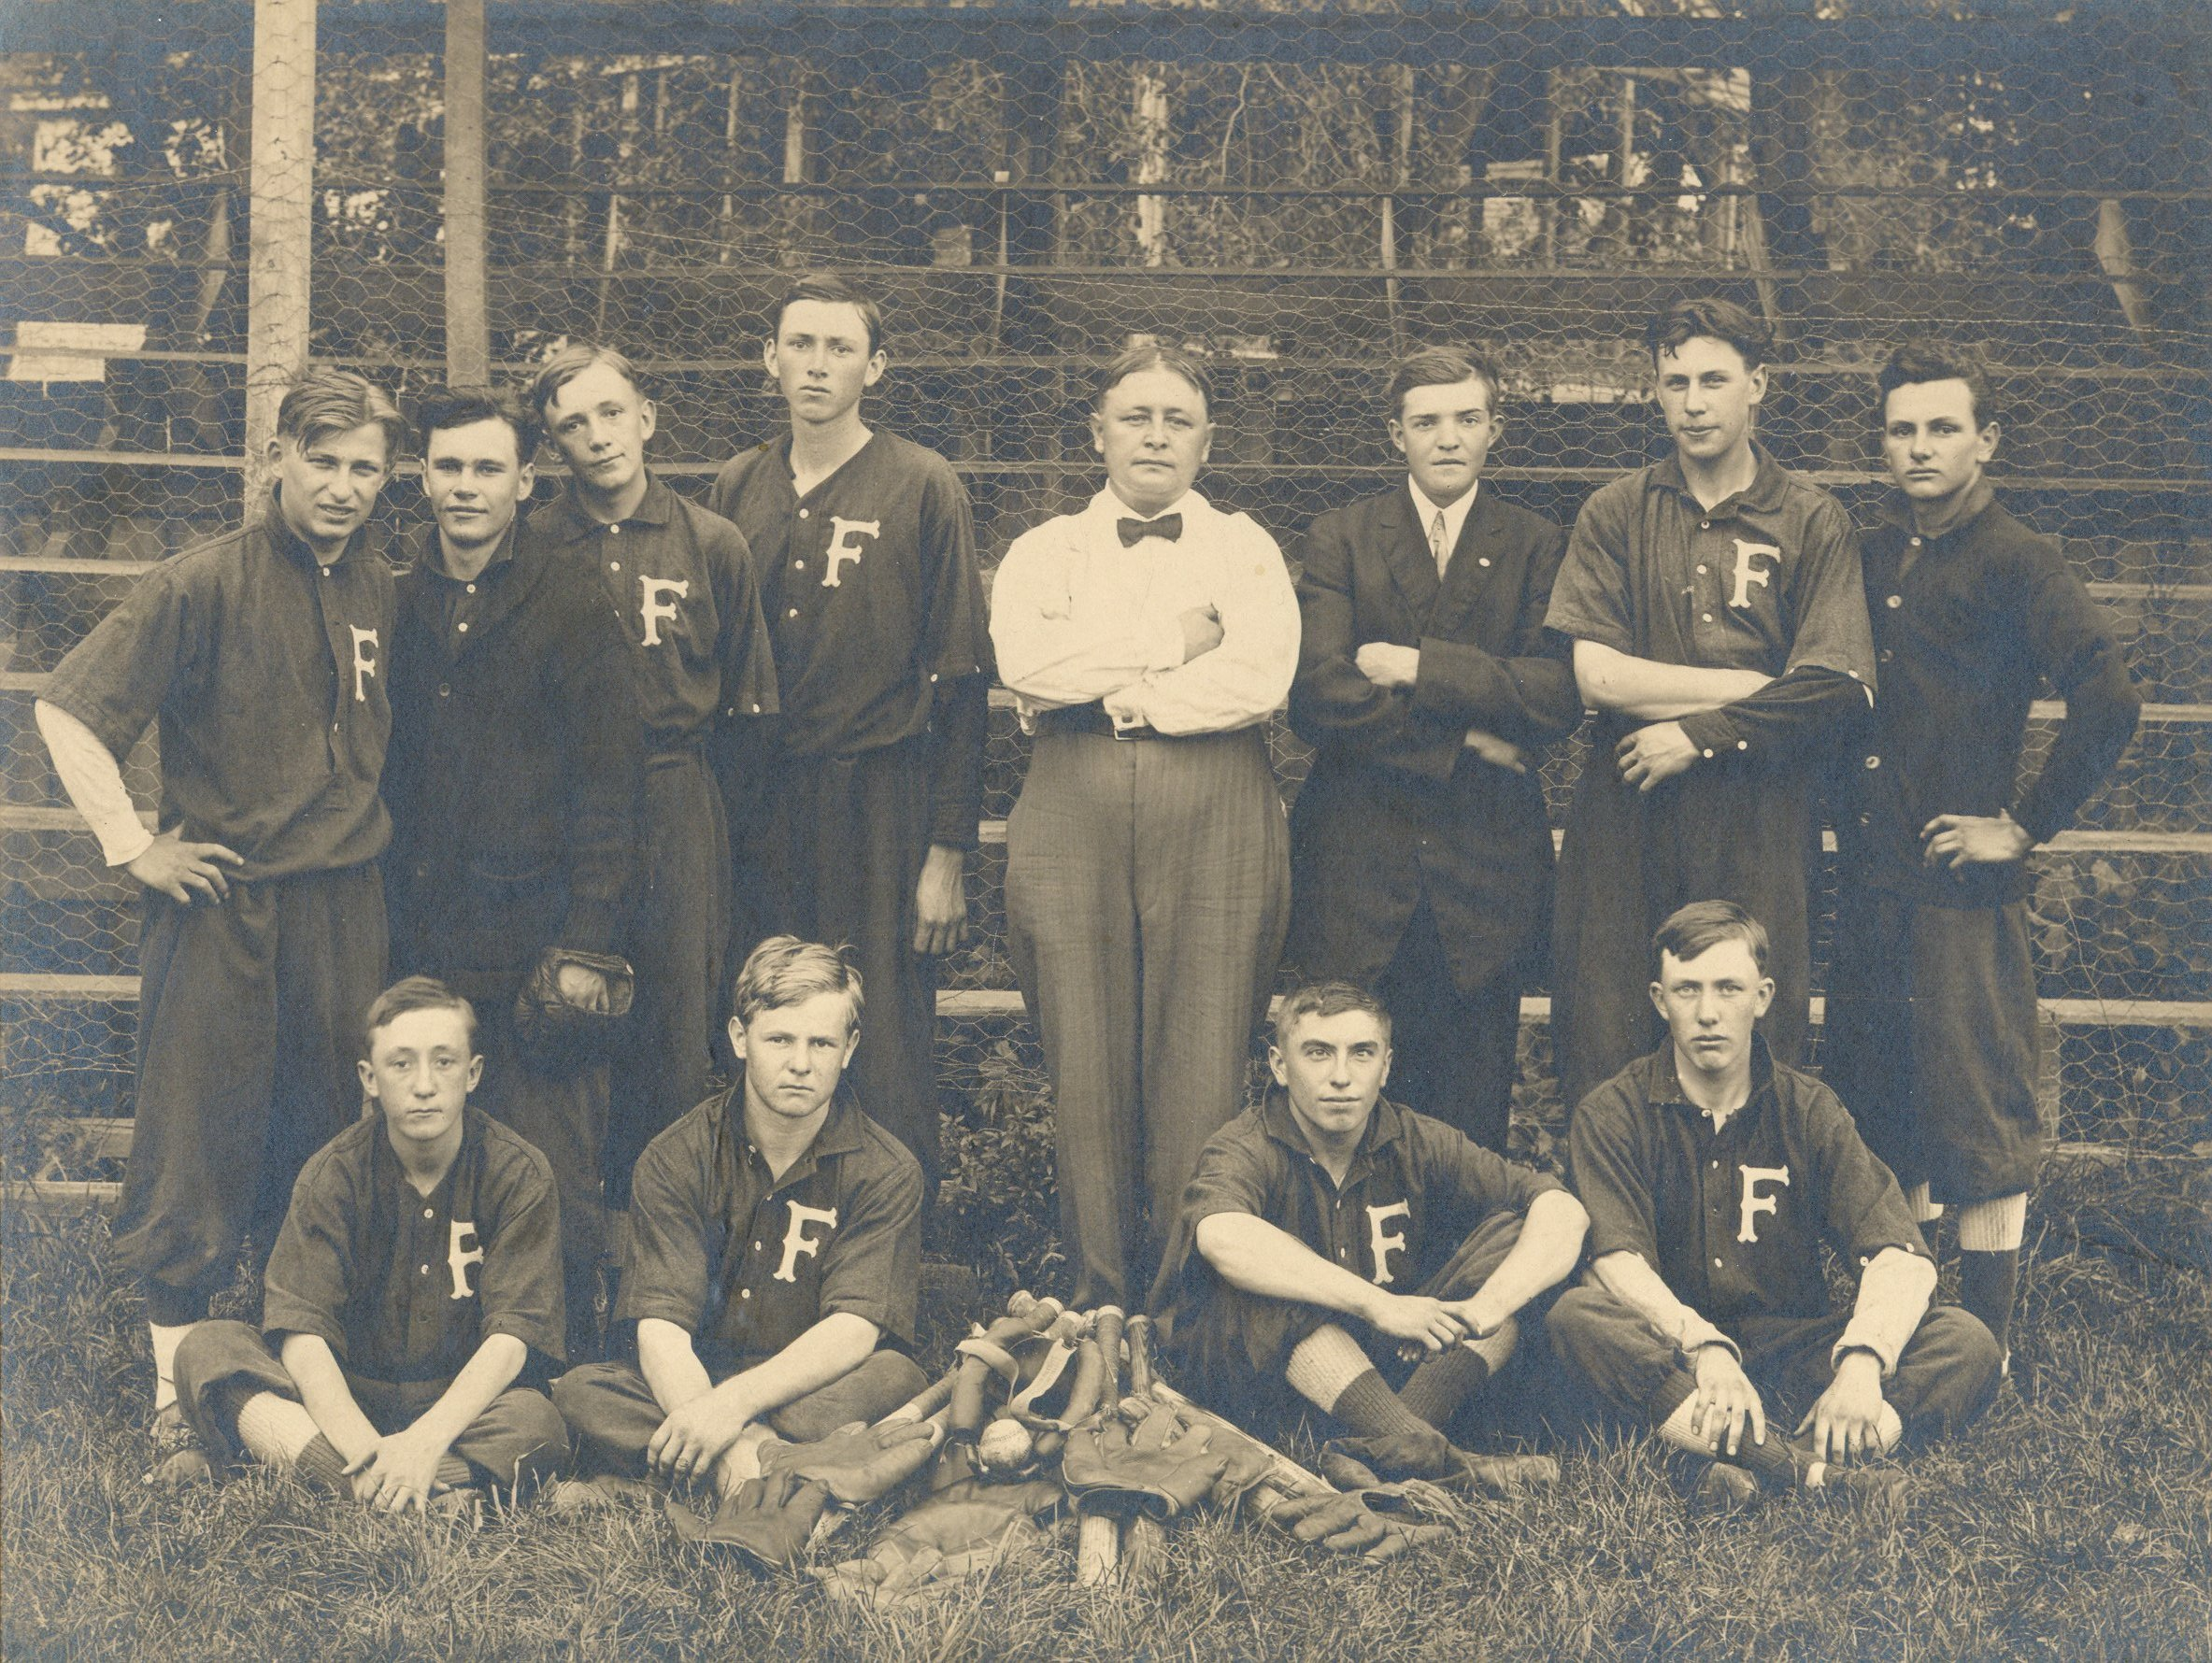 FHA Baseball Team 1910-1929